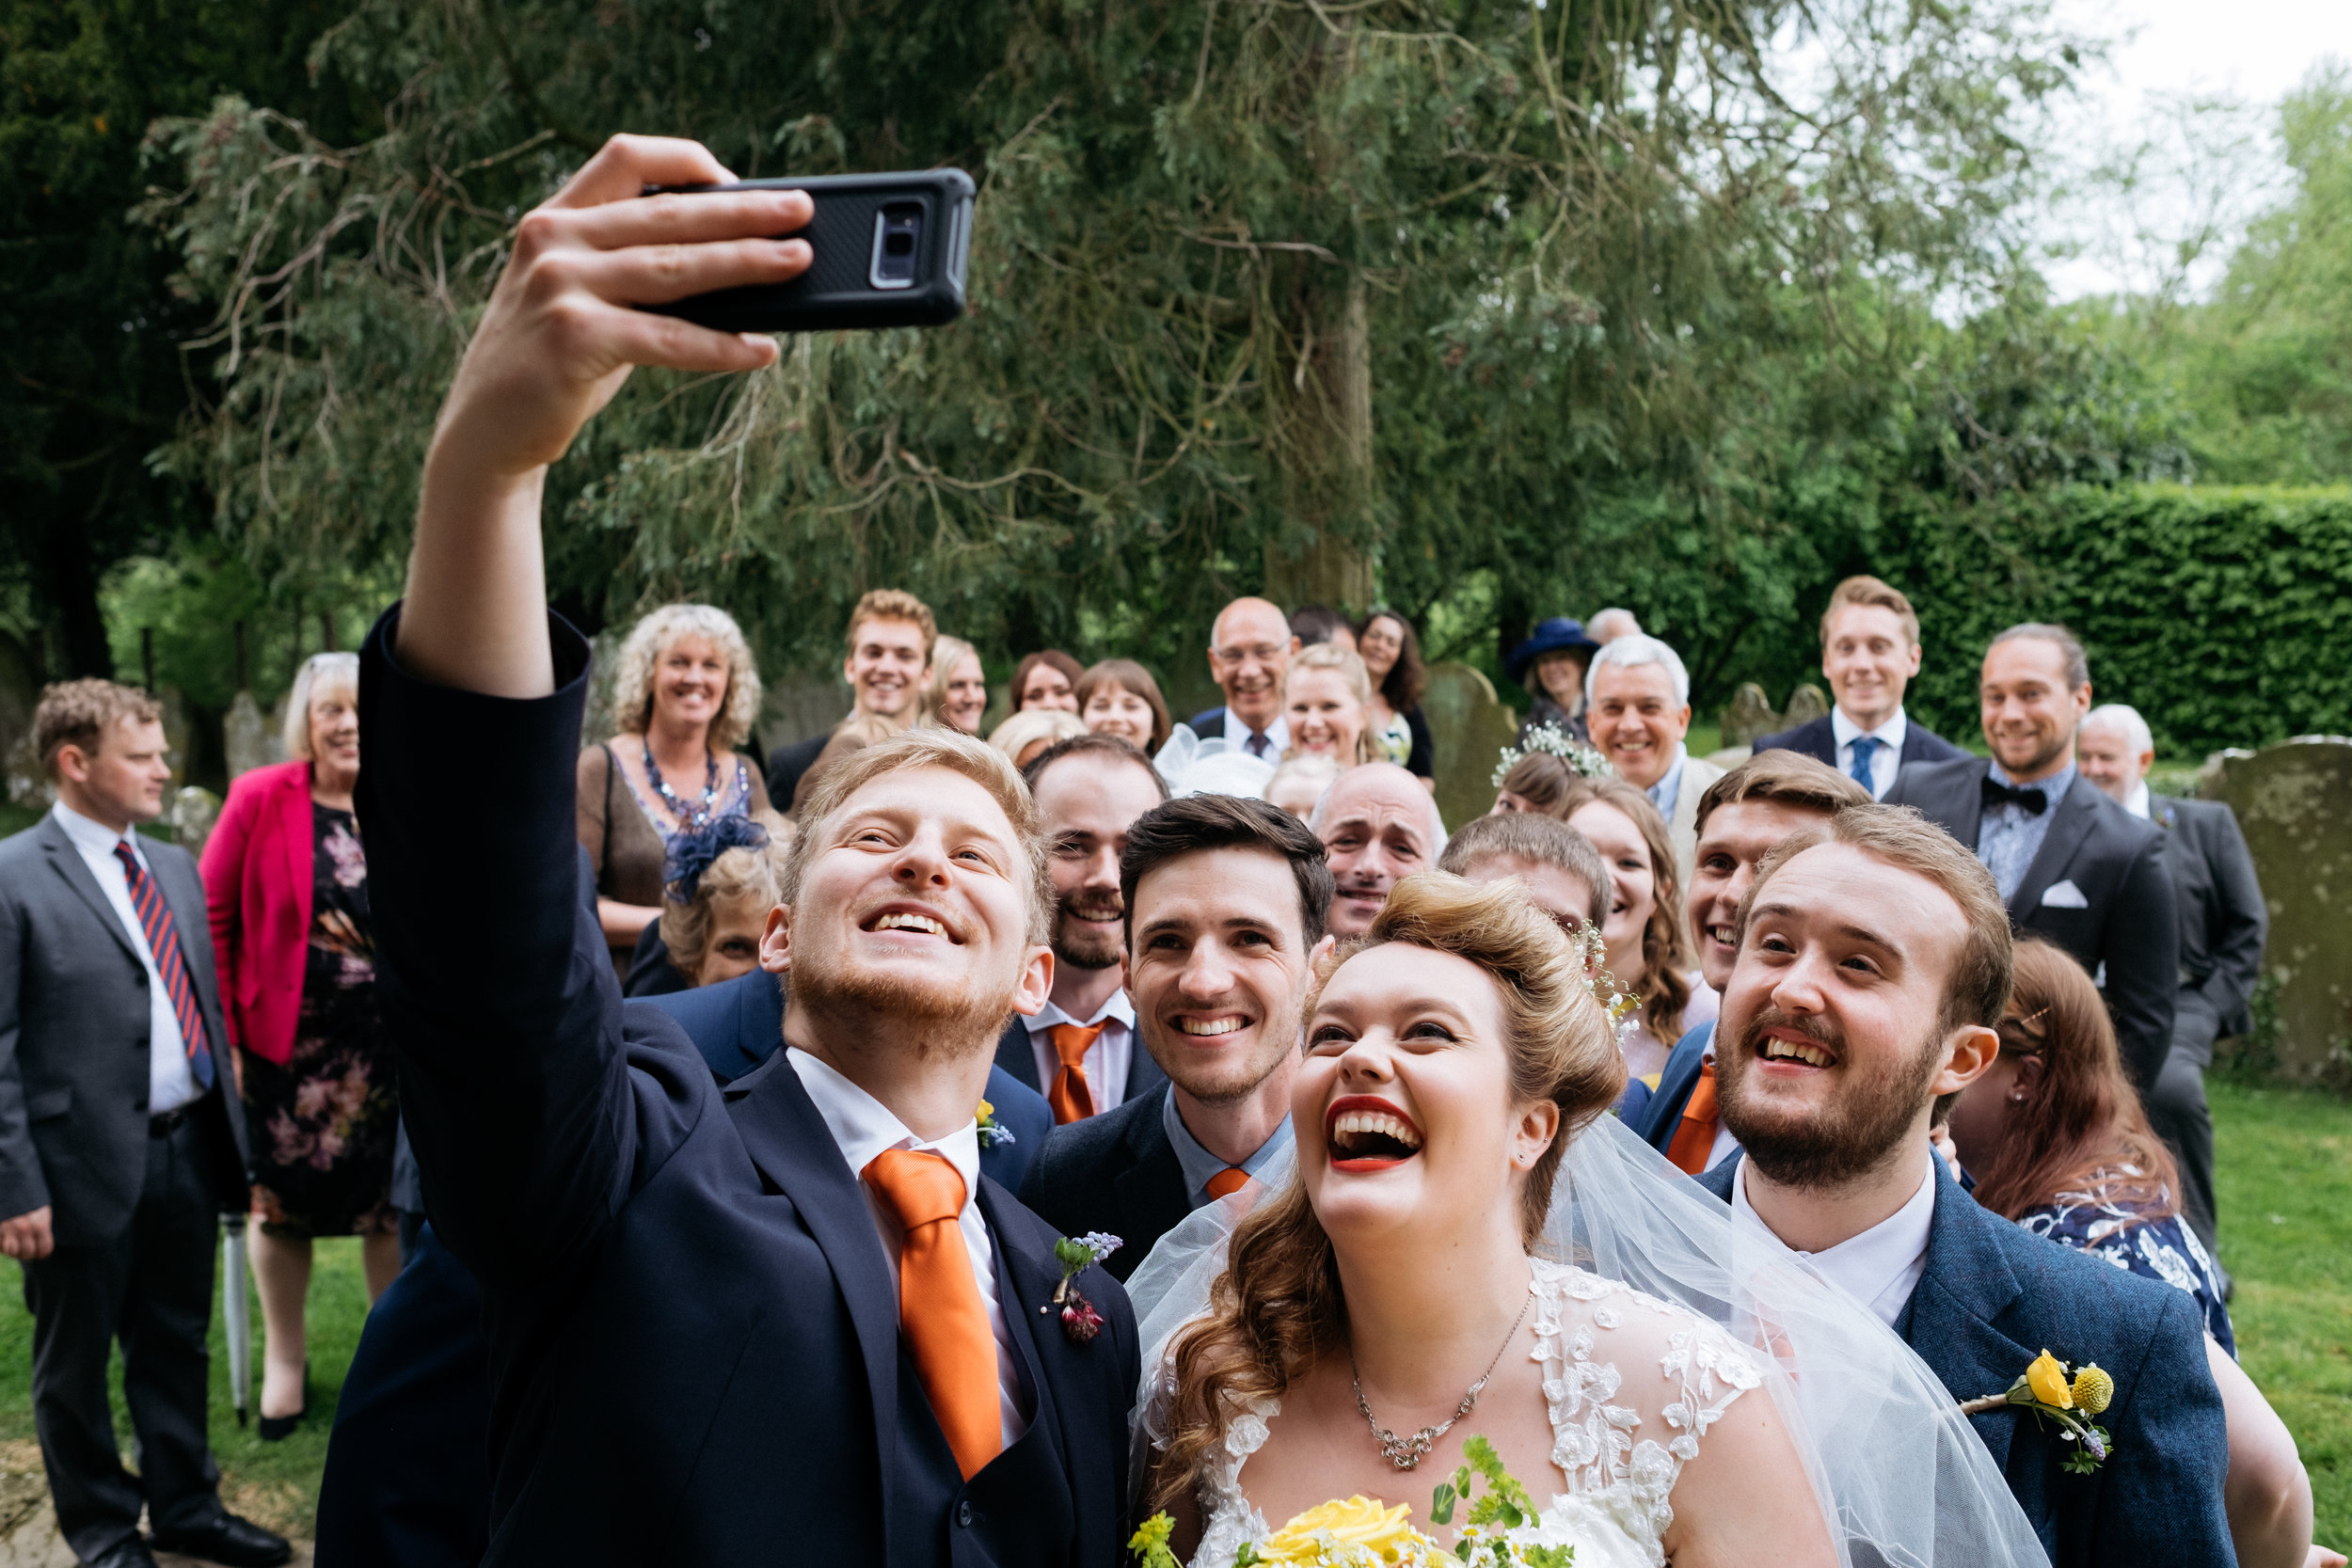 Selfie at a wedding